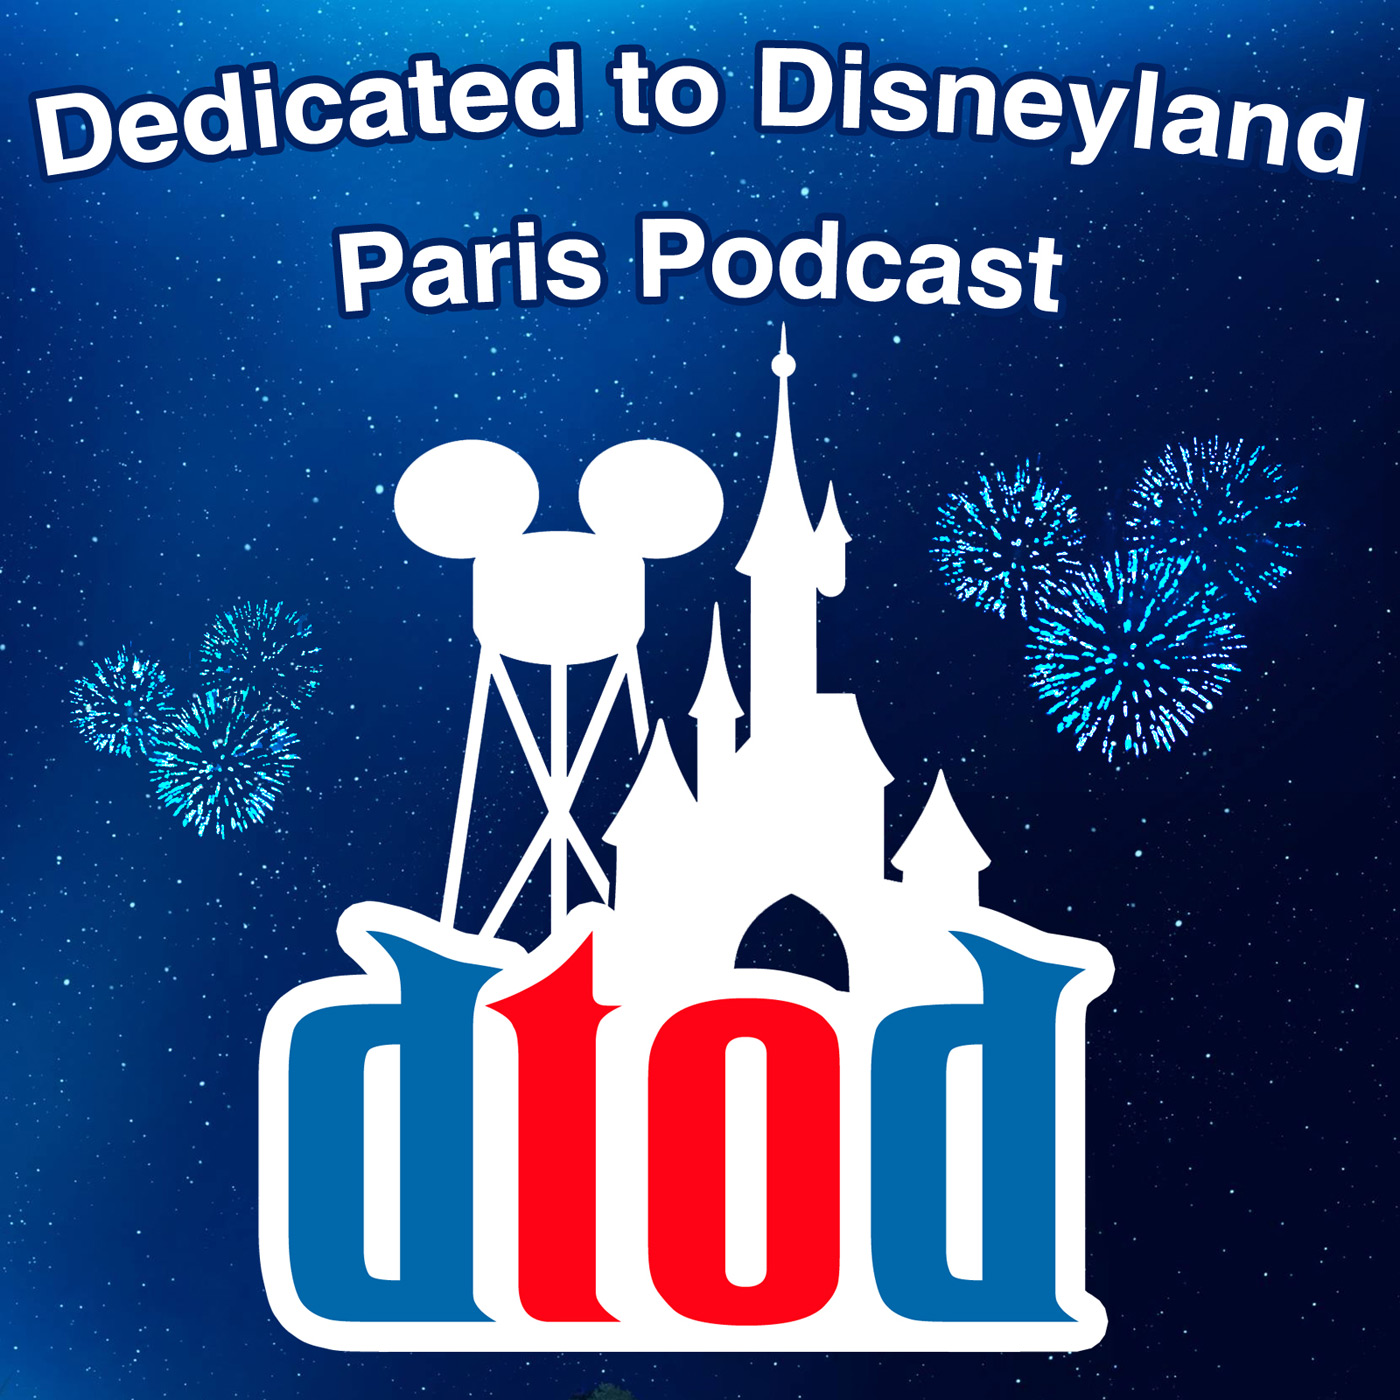 Episode 85: What if They Changed Discoveryland?